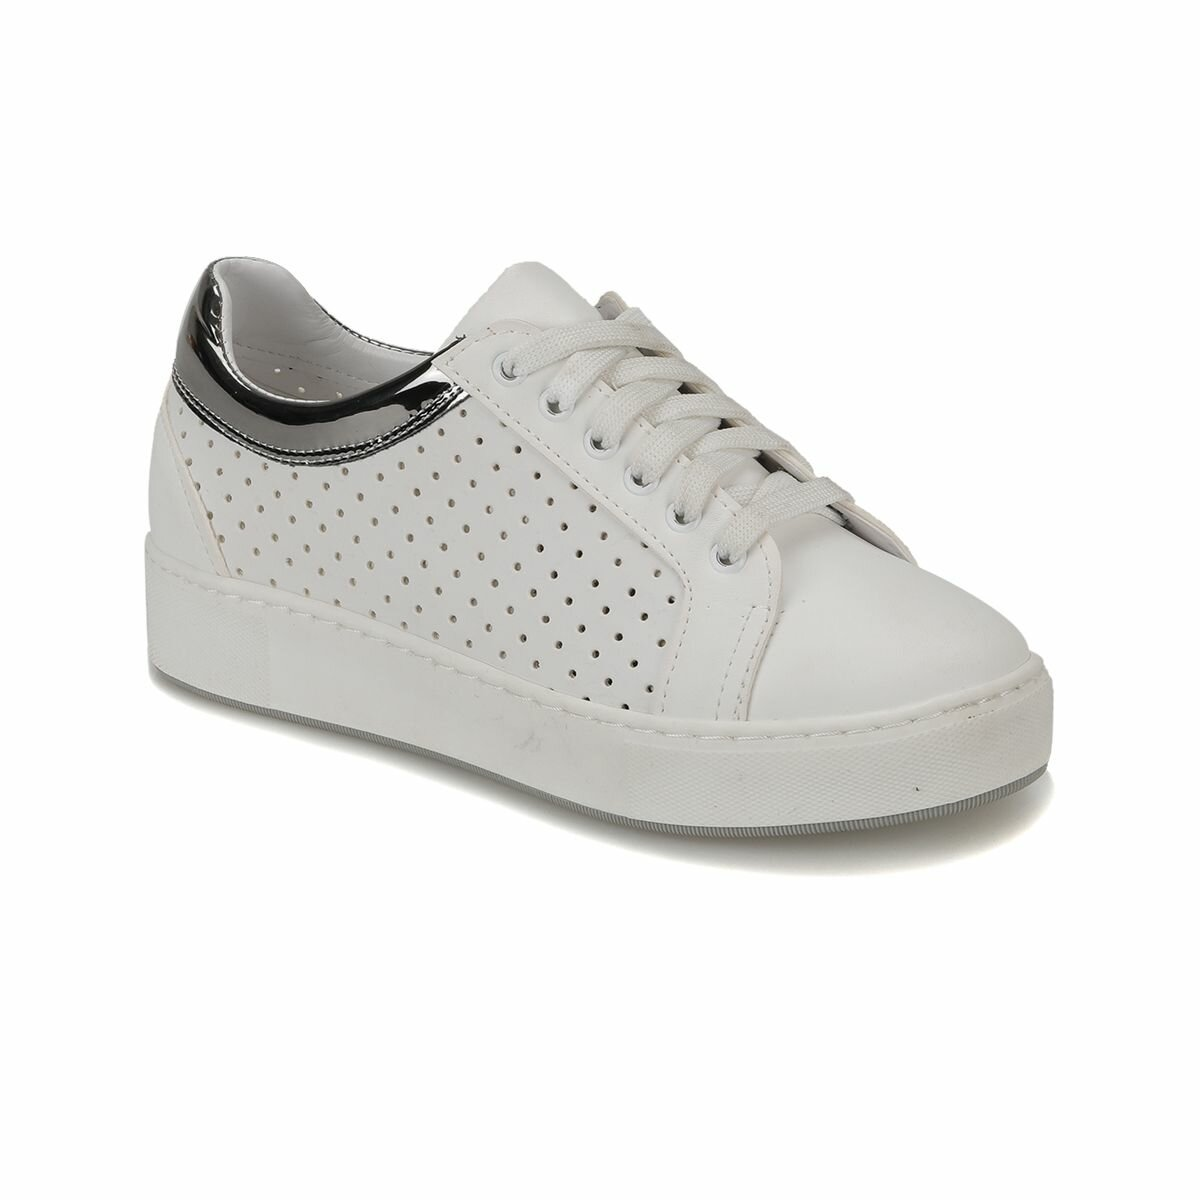 FLO CONTESSA33Z White Women 'S Sneaker Shoes BUTIGO